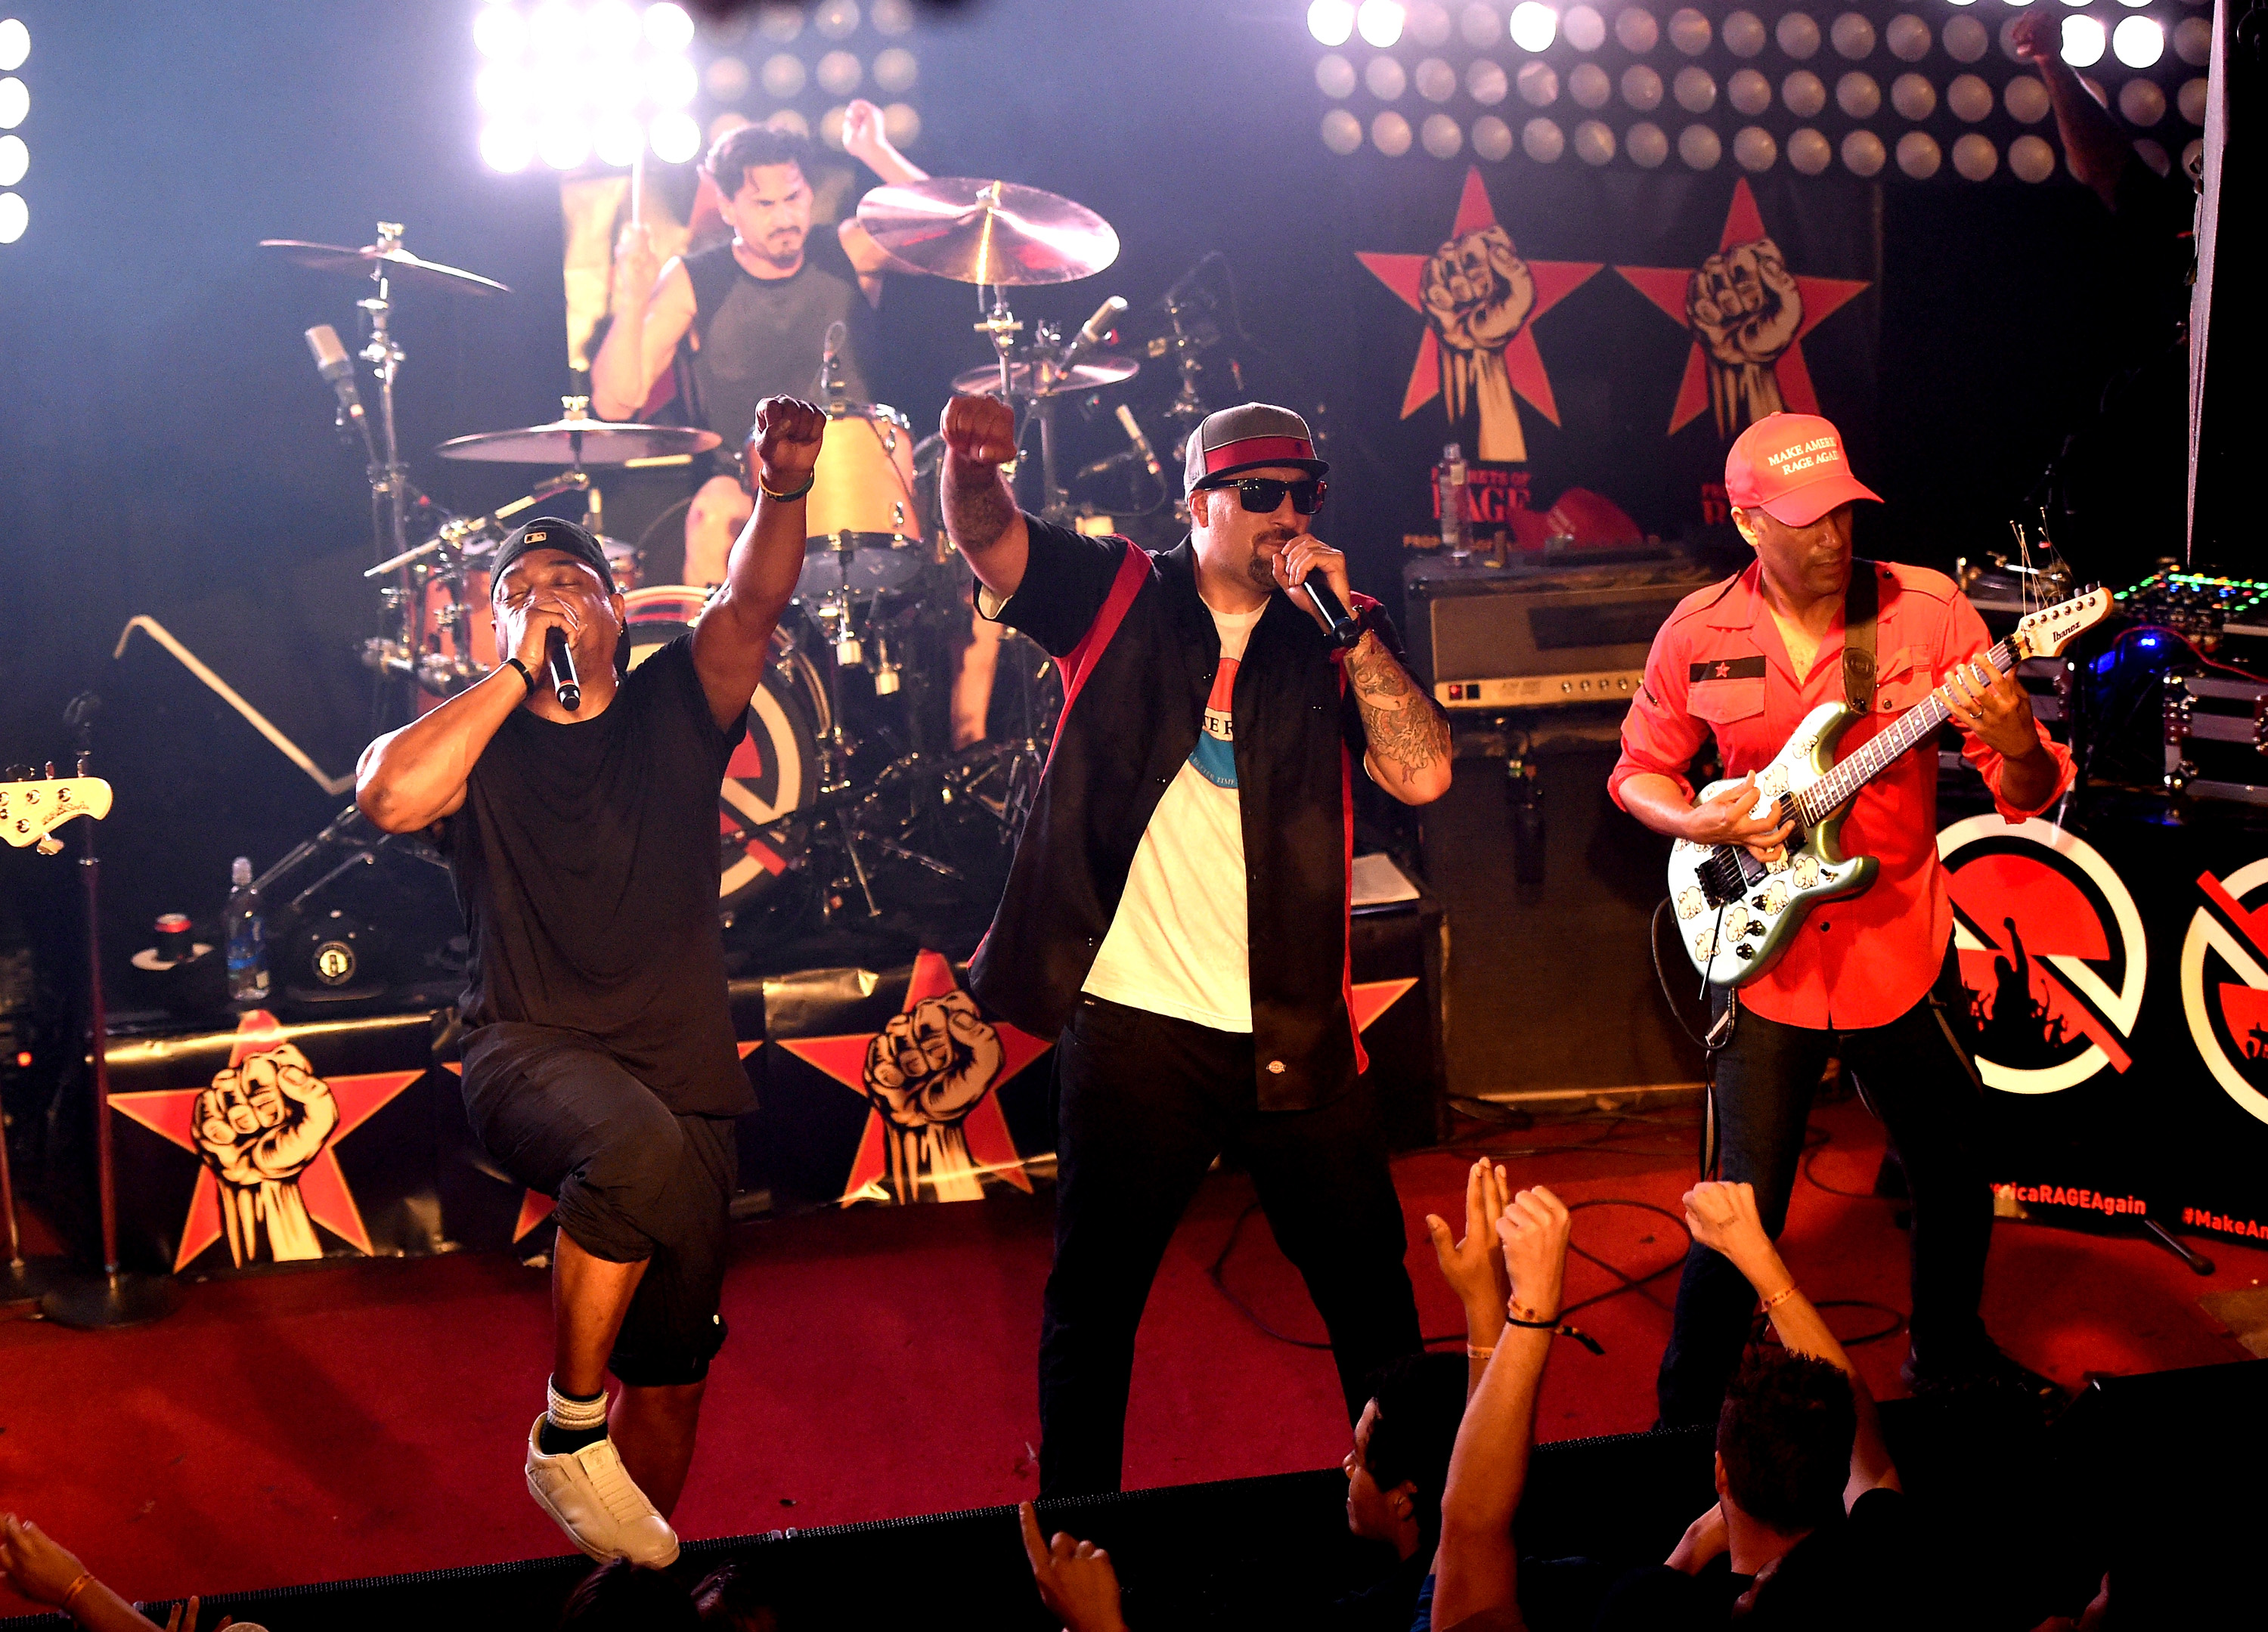 Prophets of Rage Played Their First Show, and the Set List